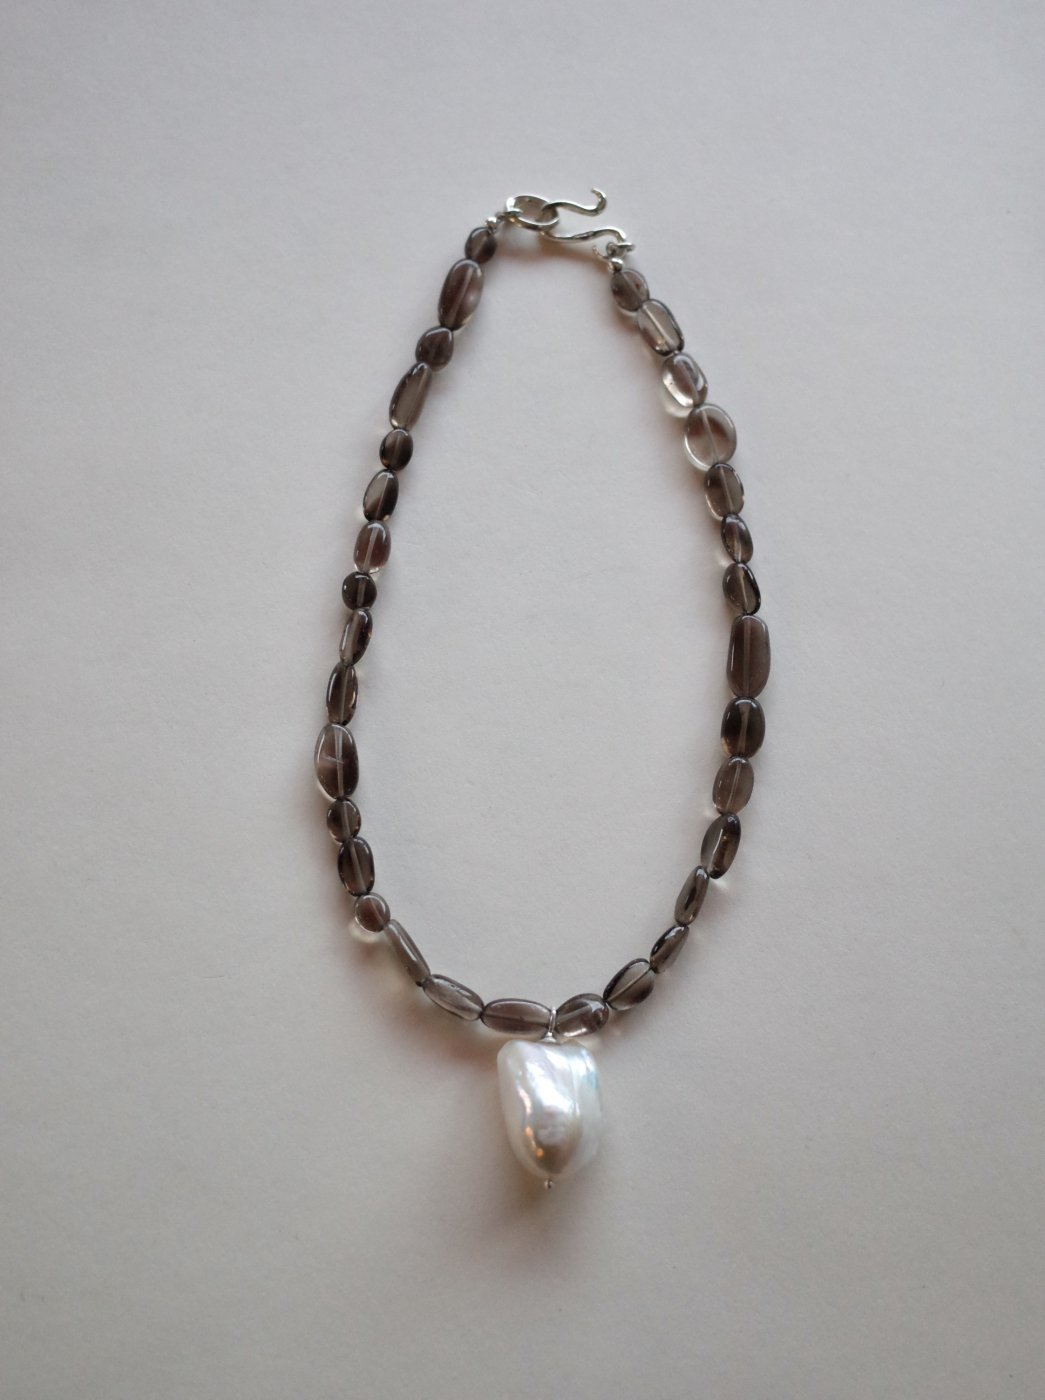 <img class='new_mark_img1' src='https://img.shop-pro.jp/img/new/icons8.gif' style='border:none;display:inline;margin:0px;padding:0px;width:auto;' />R.ALAGAN -RADZIWILL NECKLACE